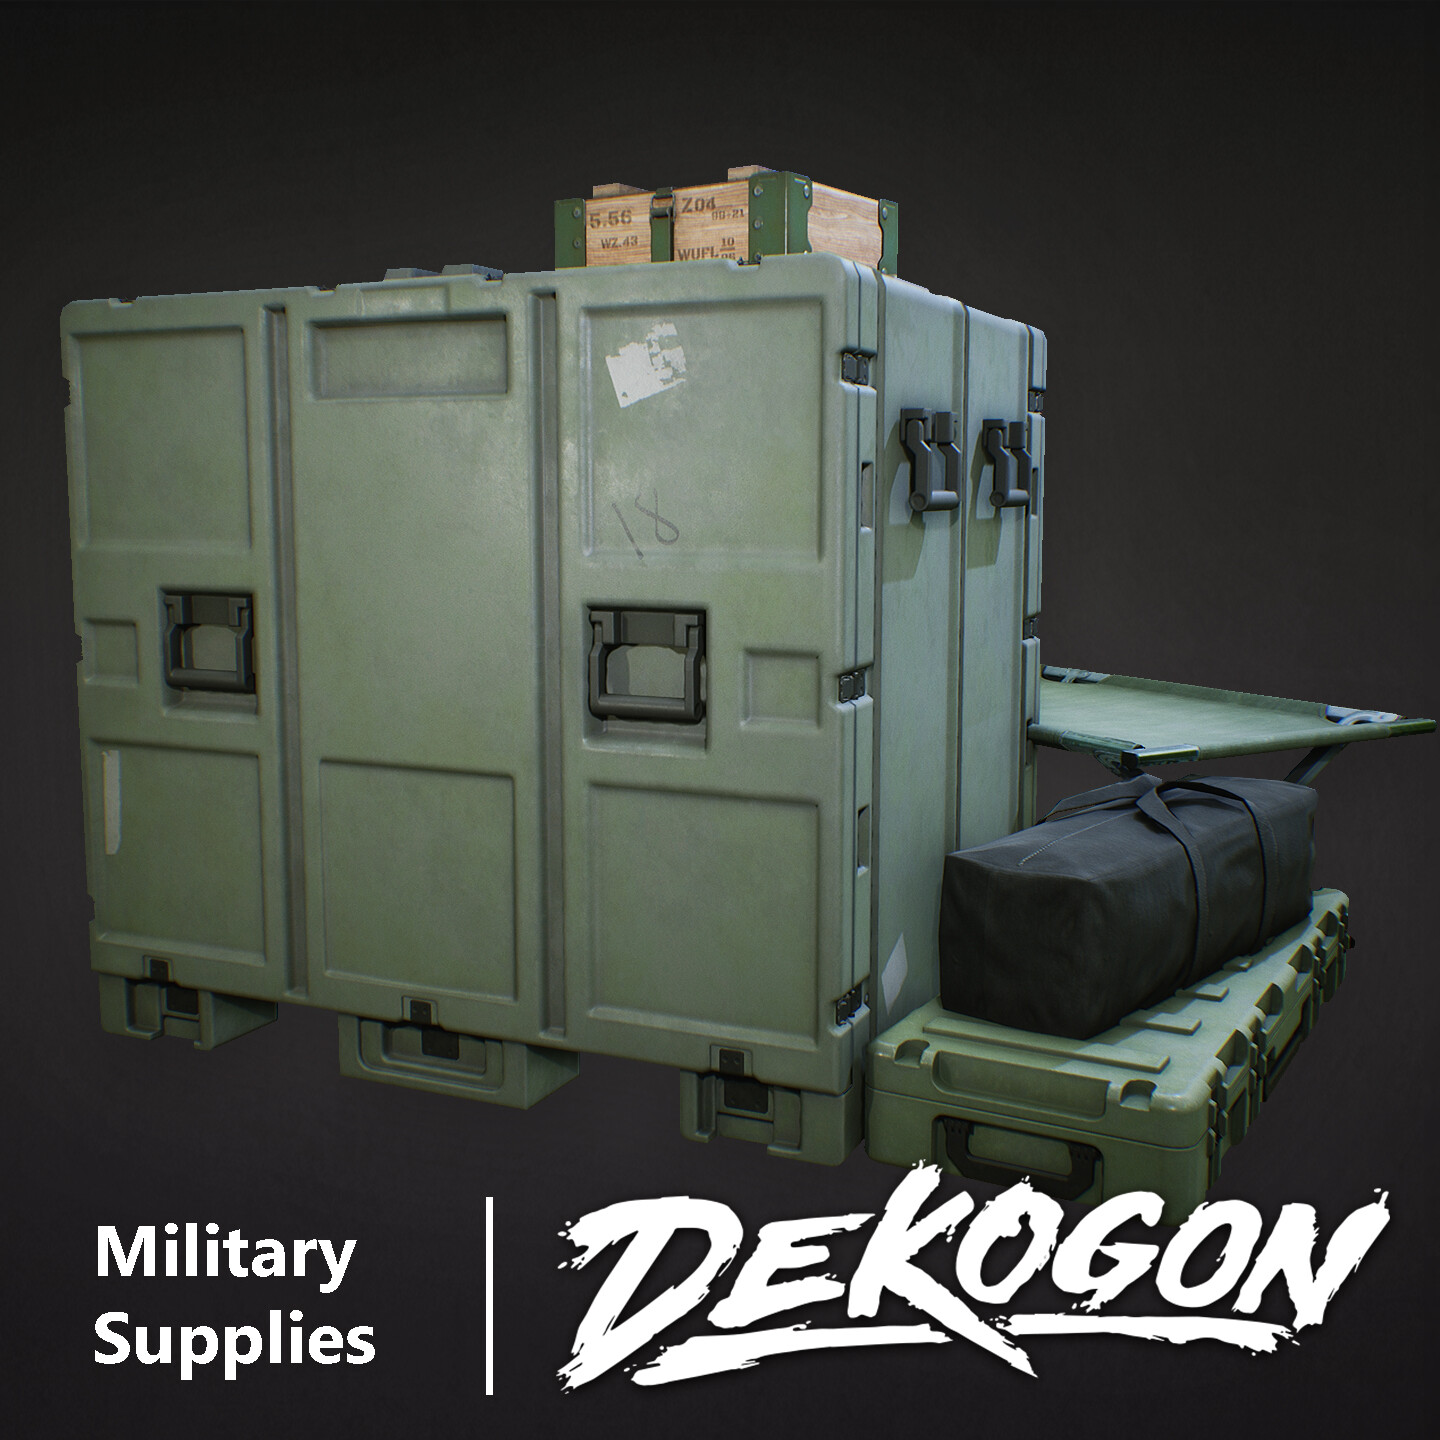 Dekogon - Military Crates and Cot